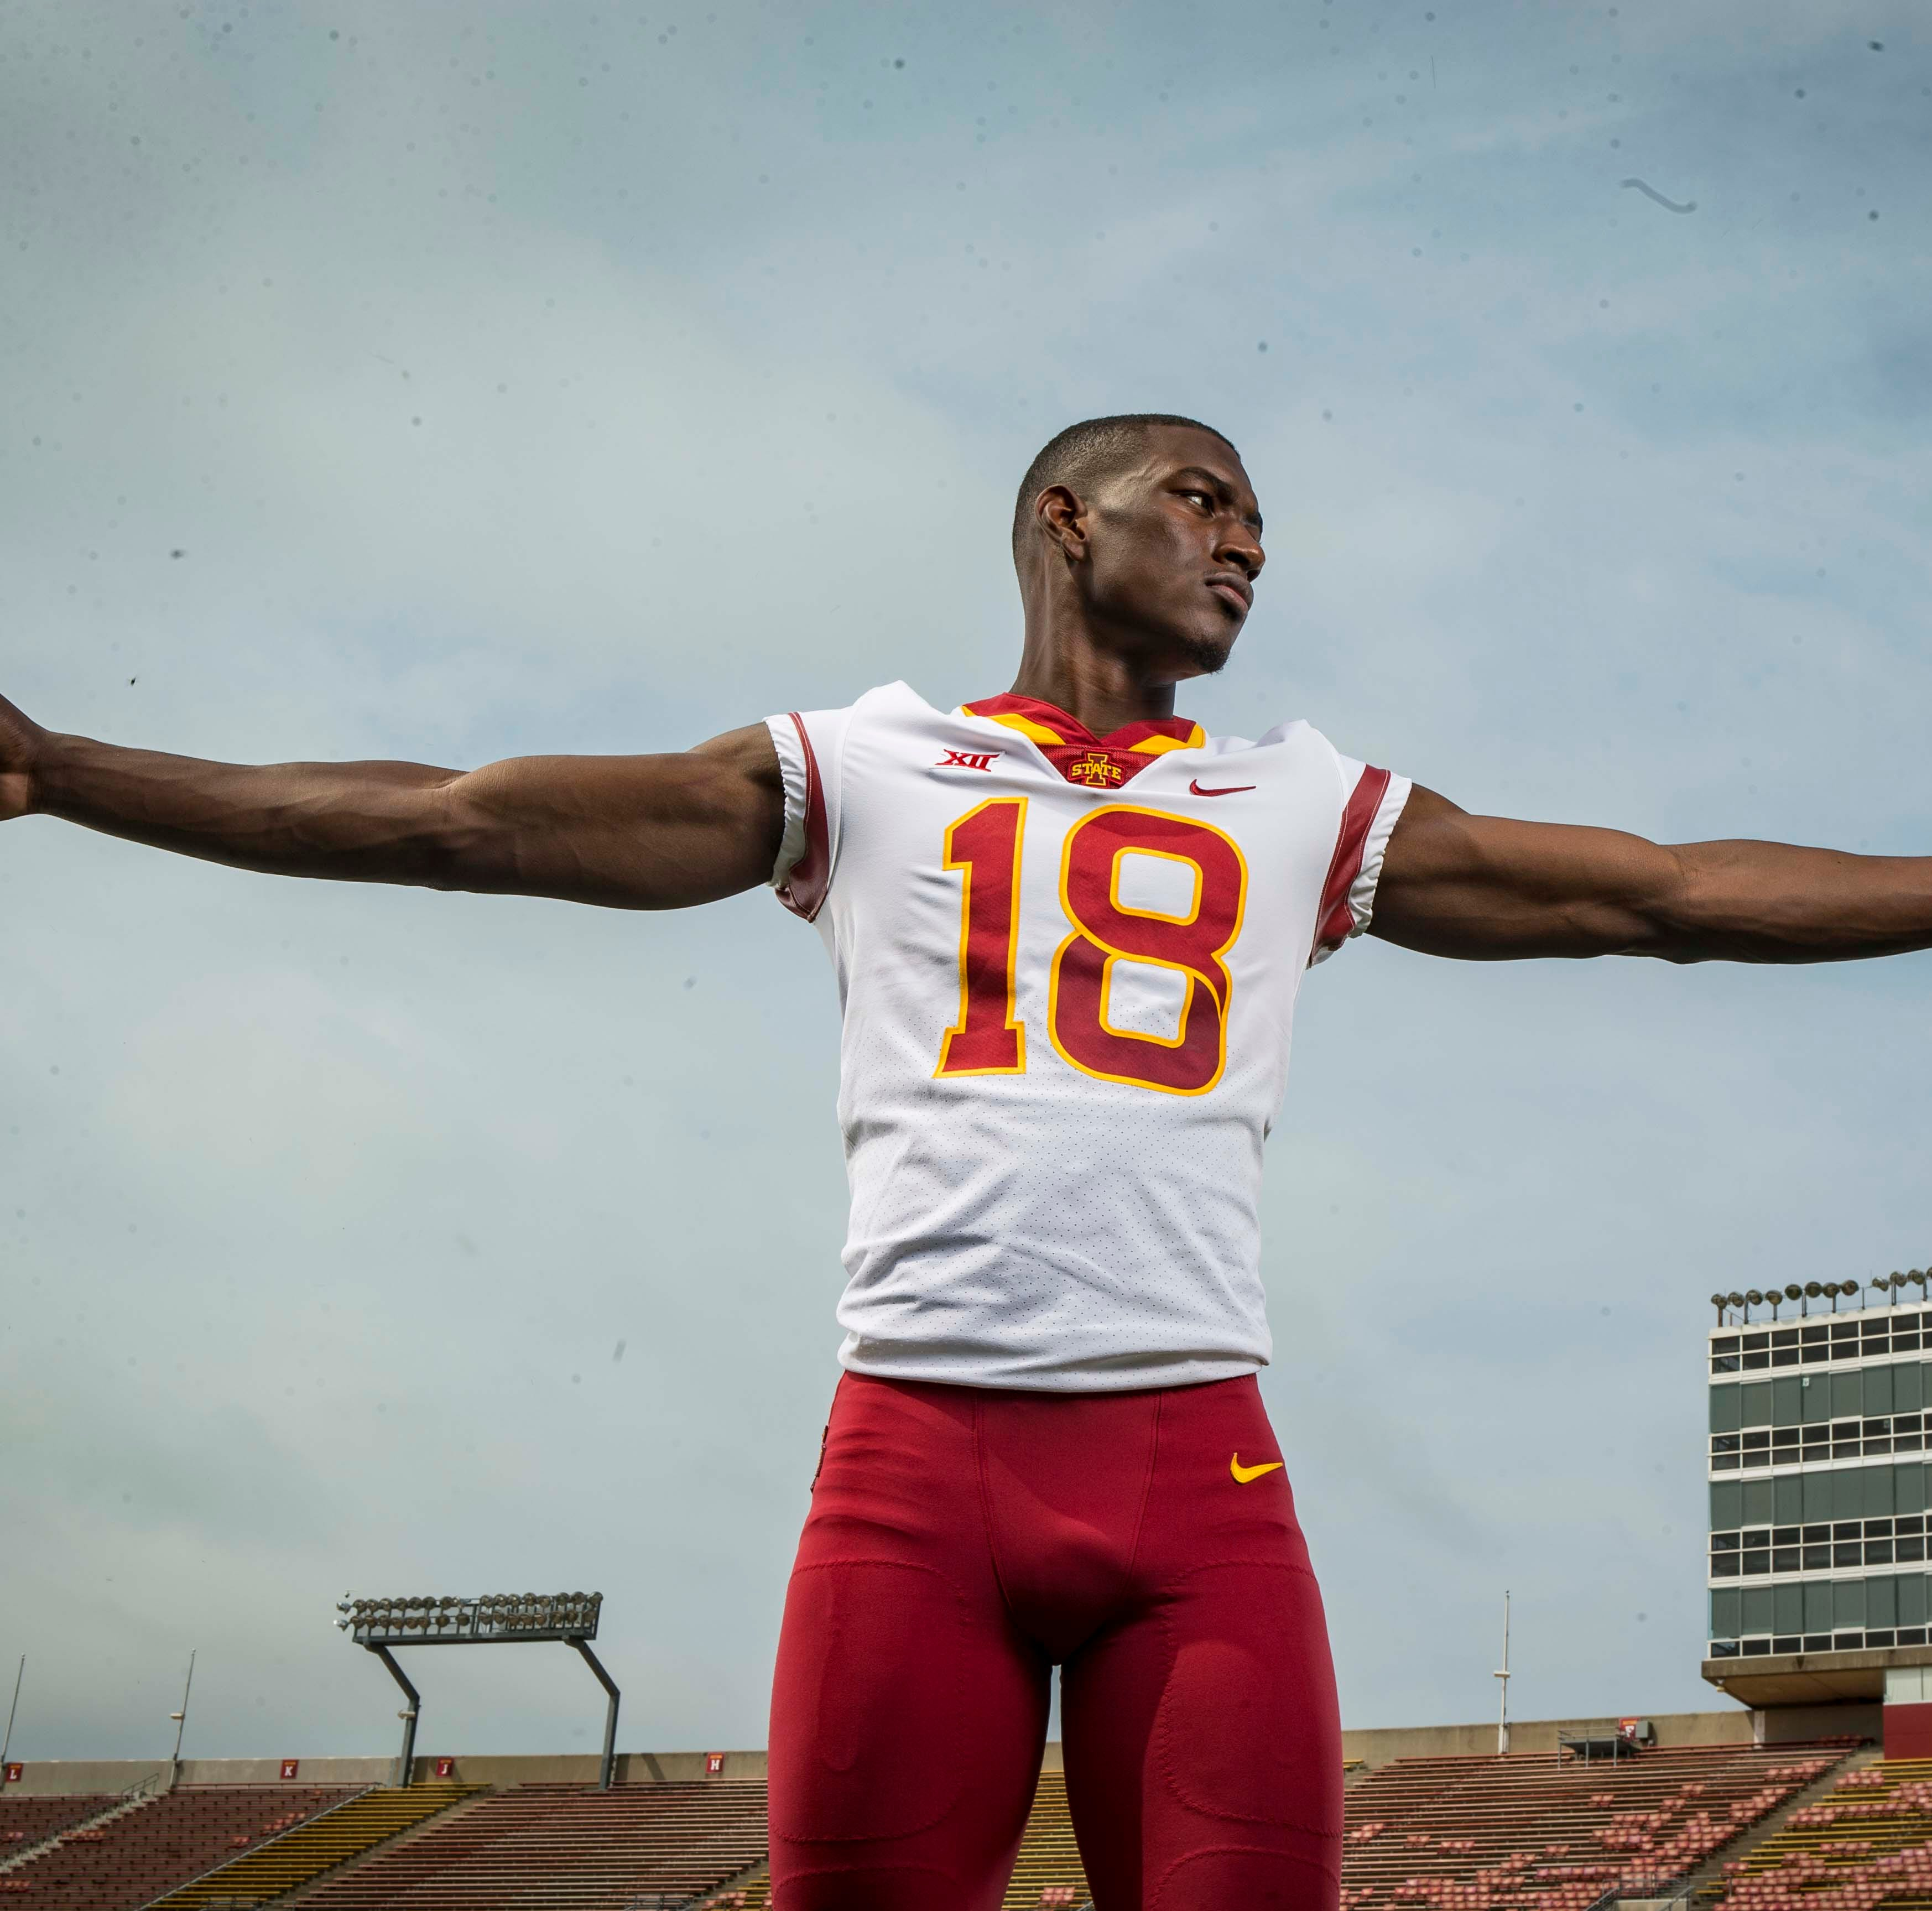 Peterson: Final Iowa State thoughts include Kempt's arm, Montgomery's legs and Butler's hands